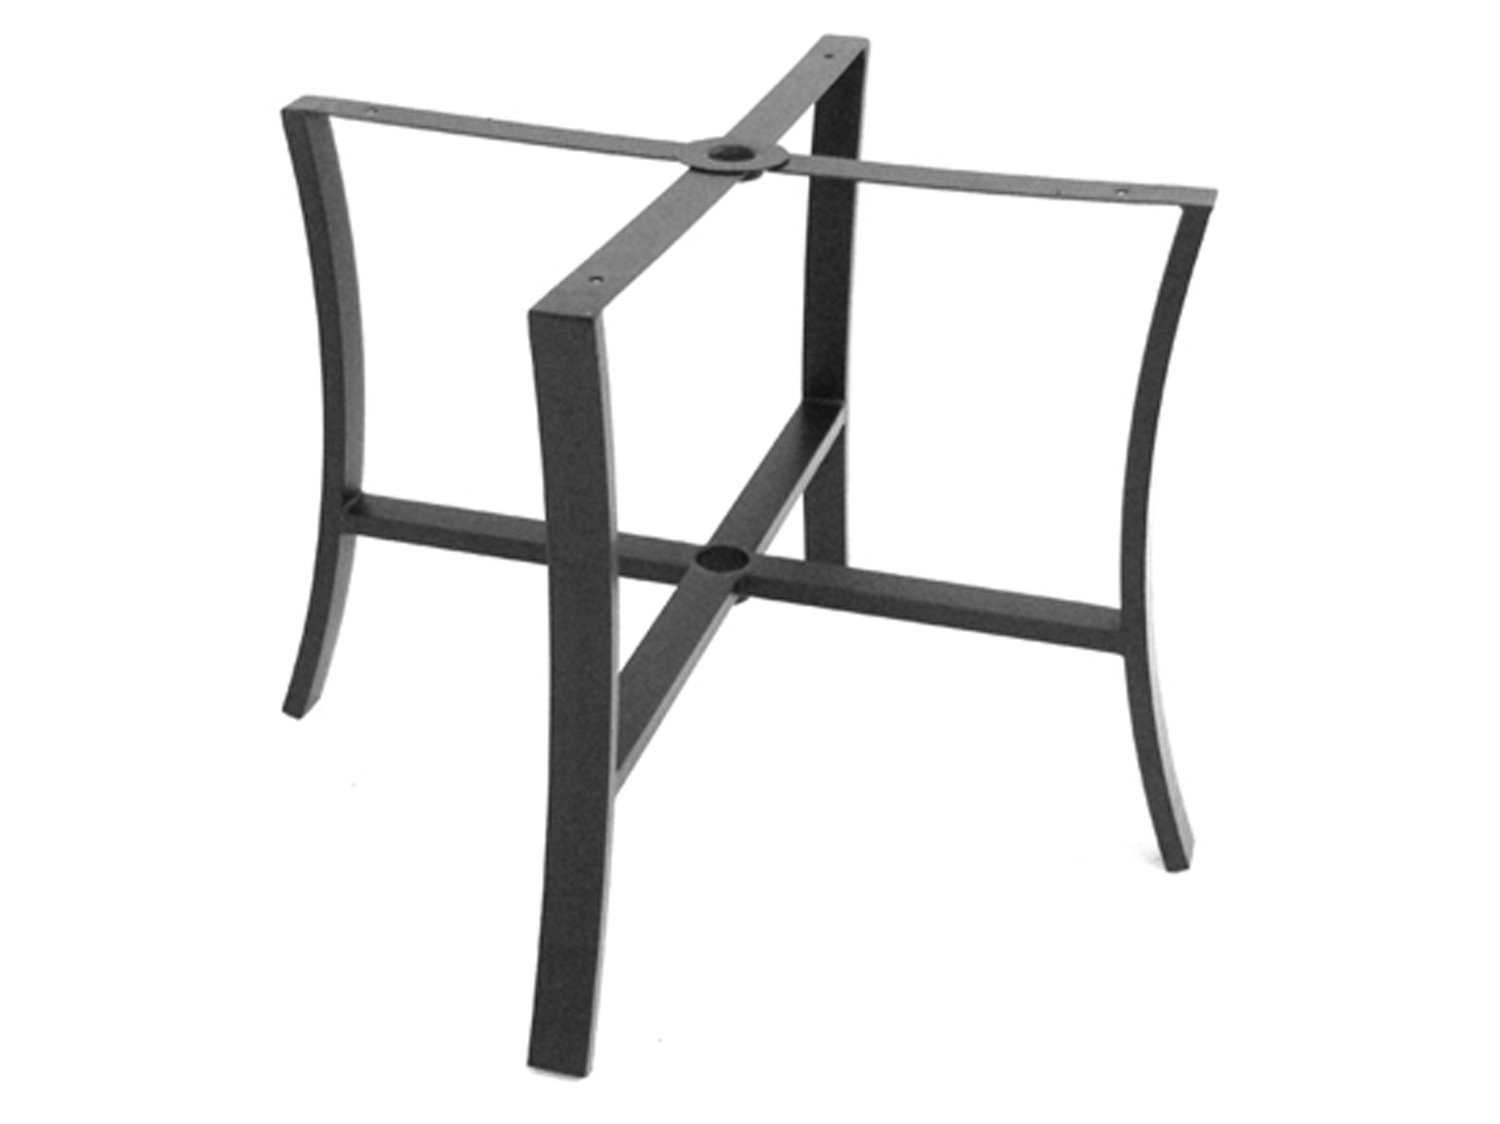 Meadowcraft Maddux Wrought Iron Dining Table Base 4448370 01